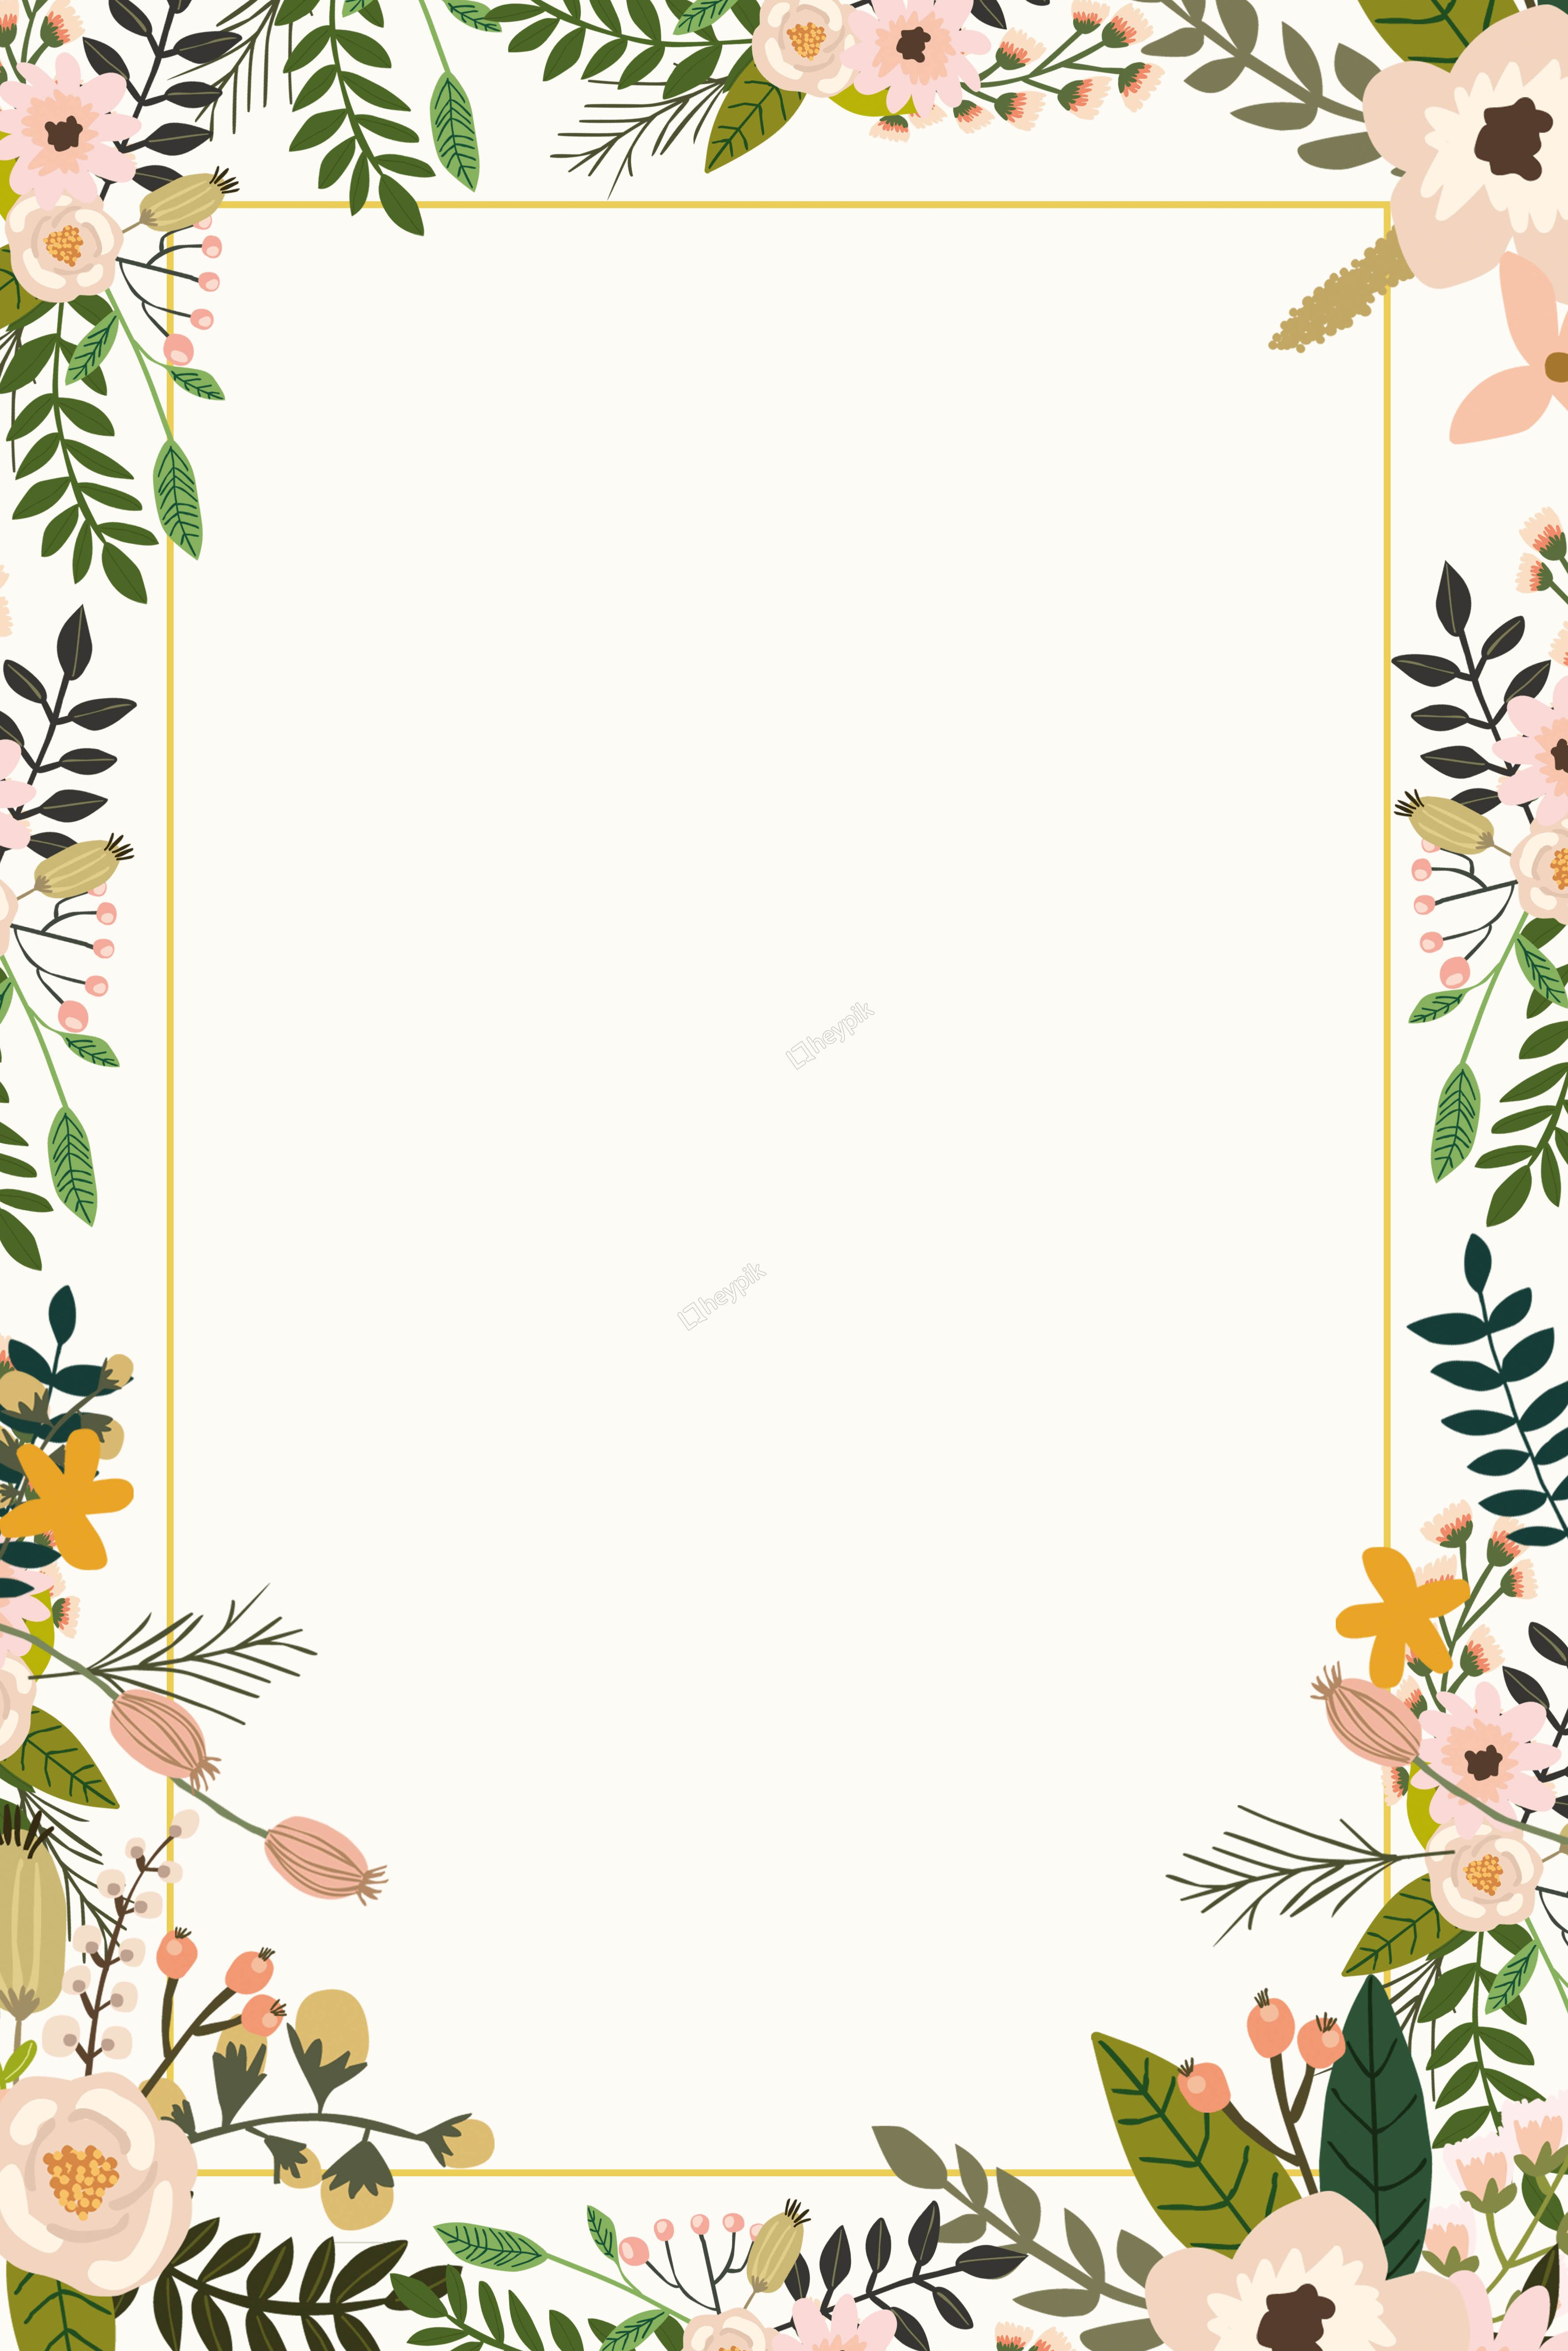 Color plant flower border background poster Poster bunga